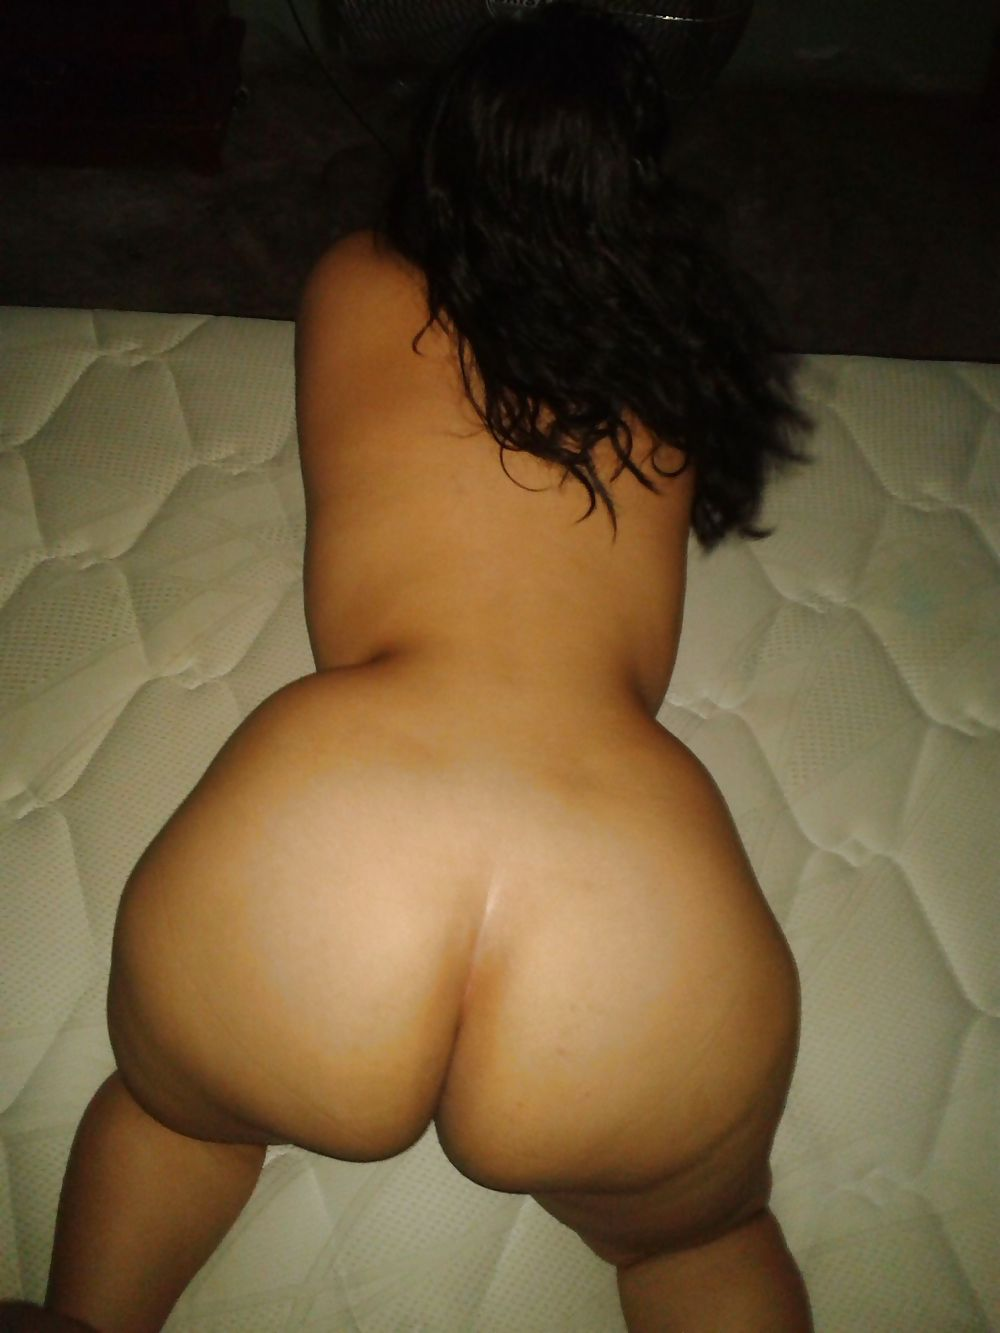 Impudence! Big thick ass naked hot latina consider